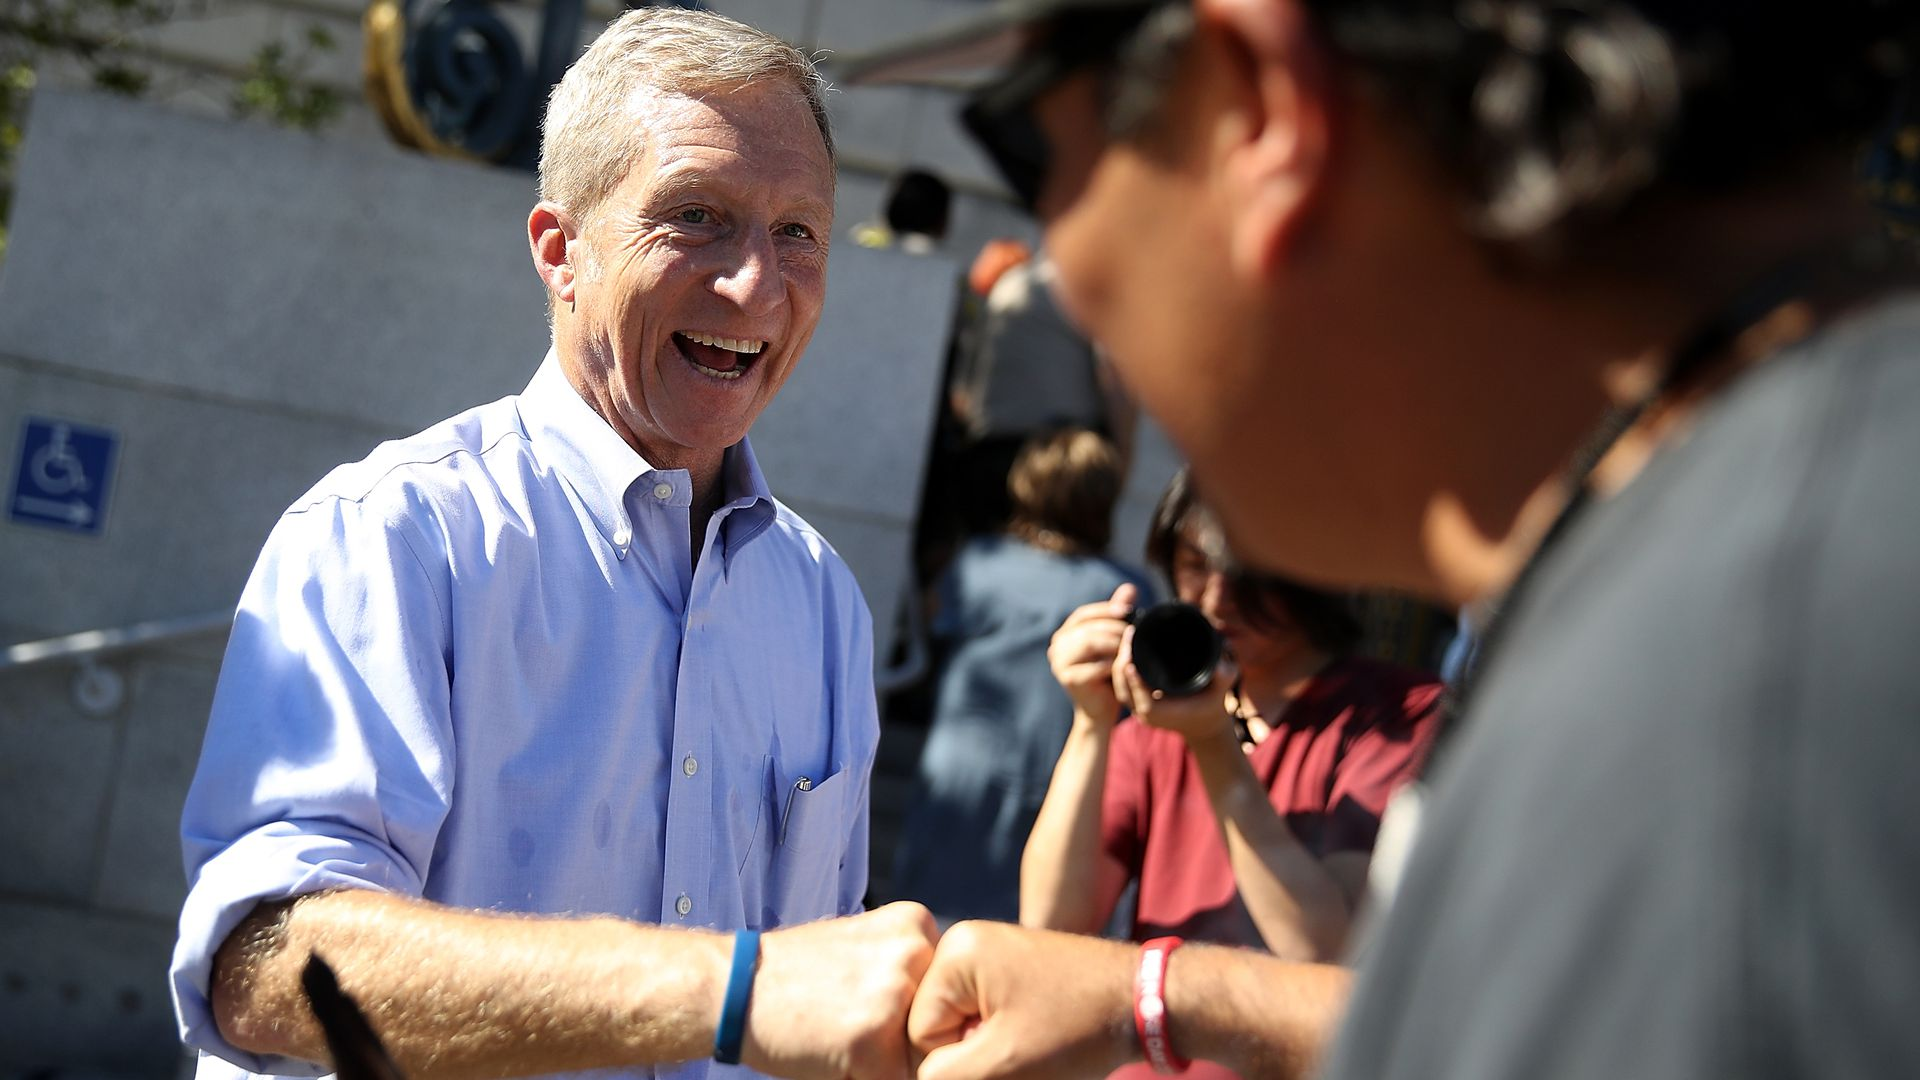 Tom Steyer talking to people at a rally